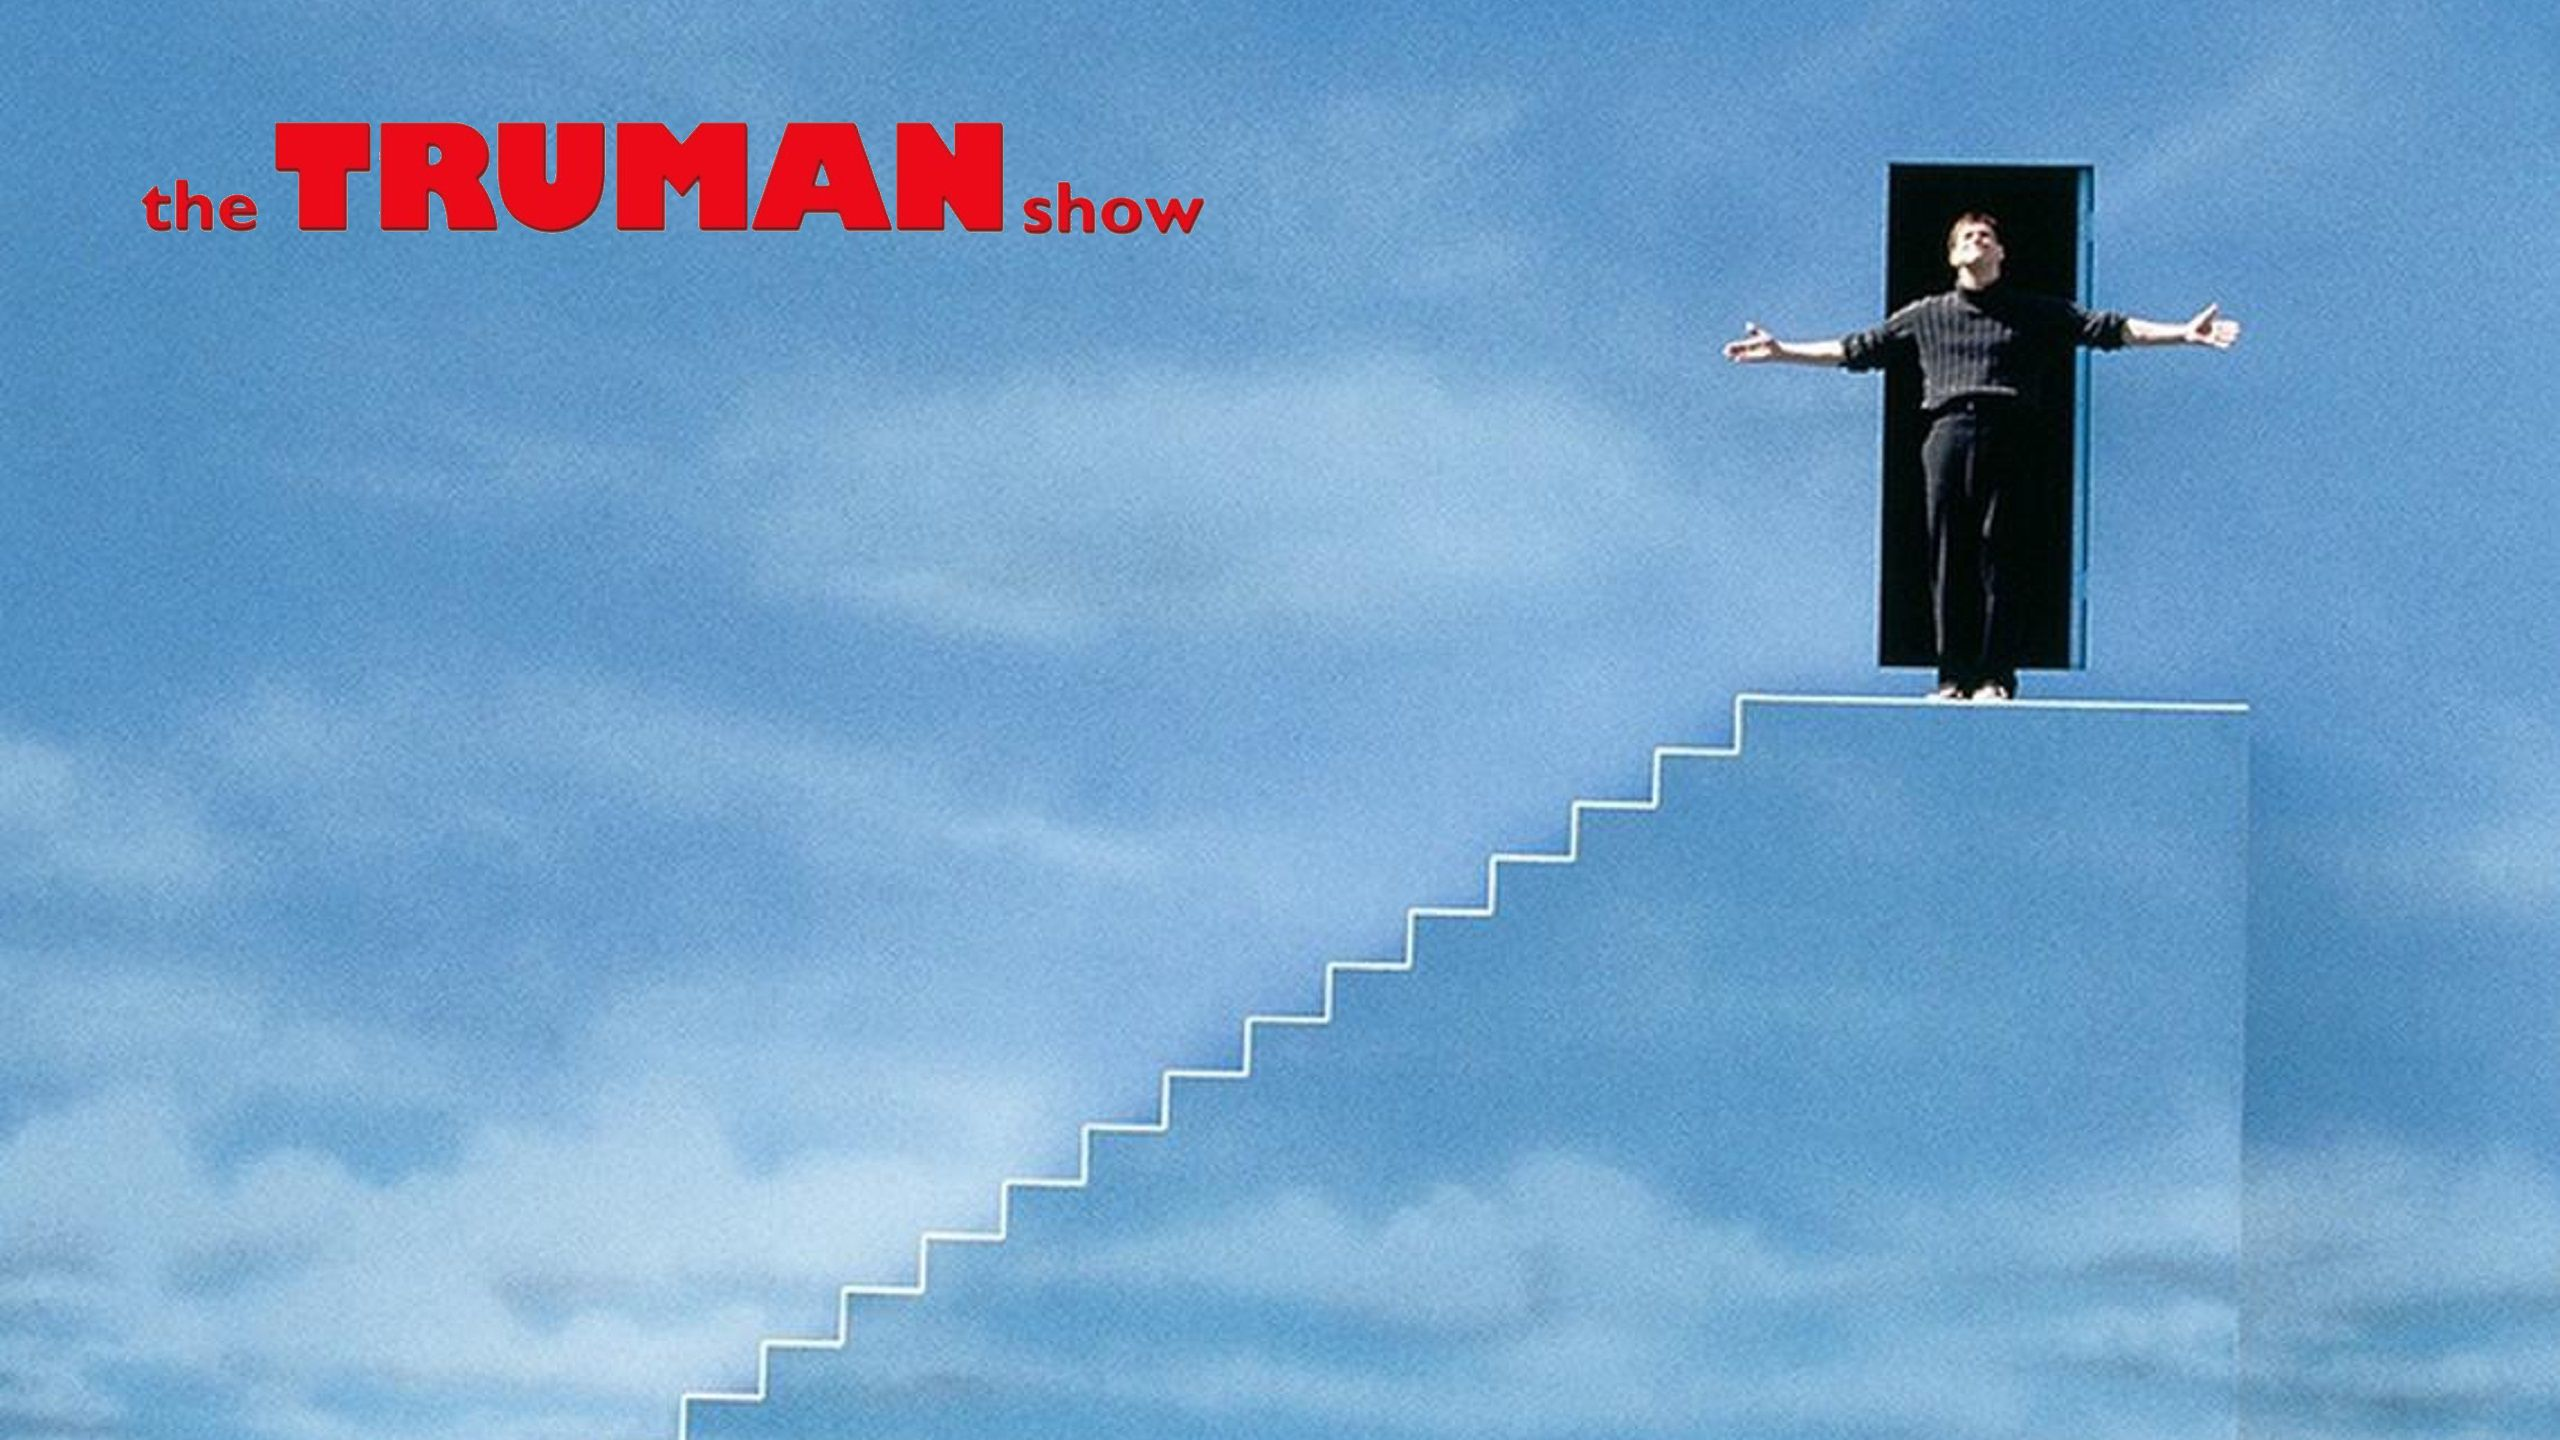 The Truman Show 1998 ending scene with logo